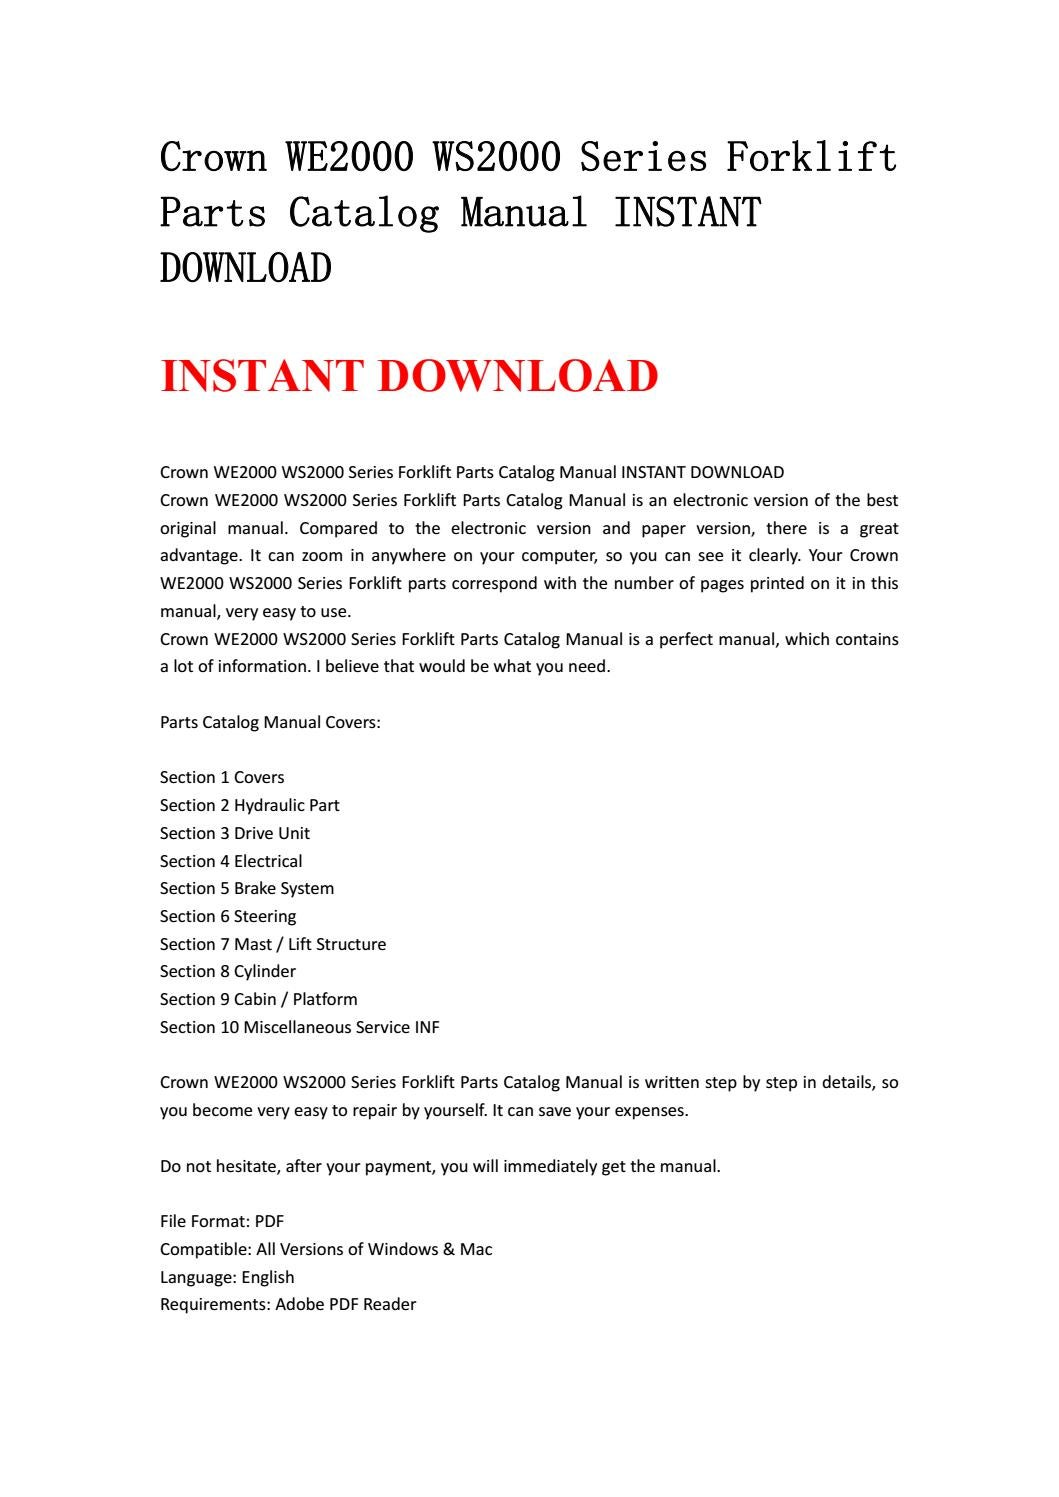 Crown we2000 ws2000 series forklift parts catalog manual instant download  by ksjefksme - issuu